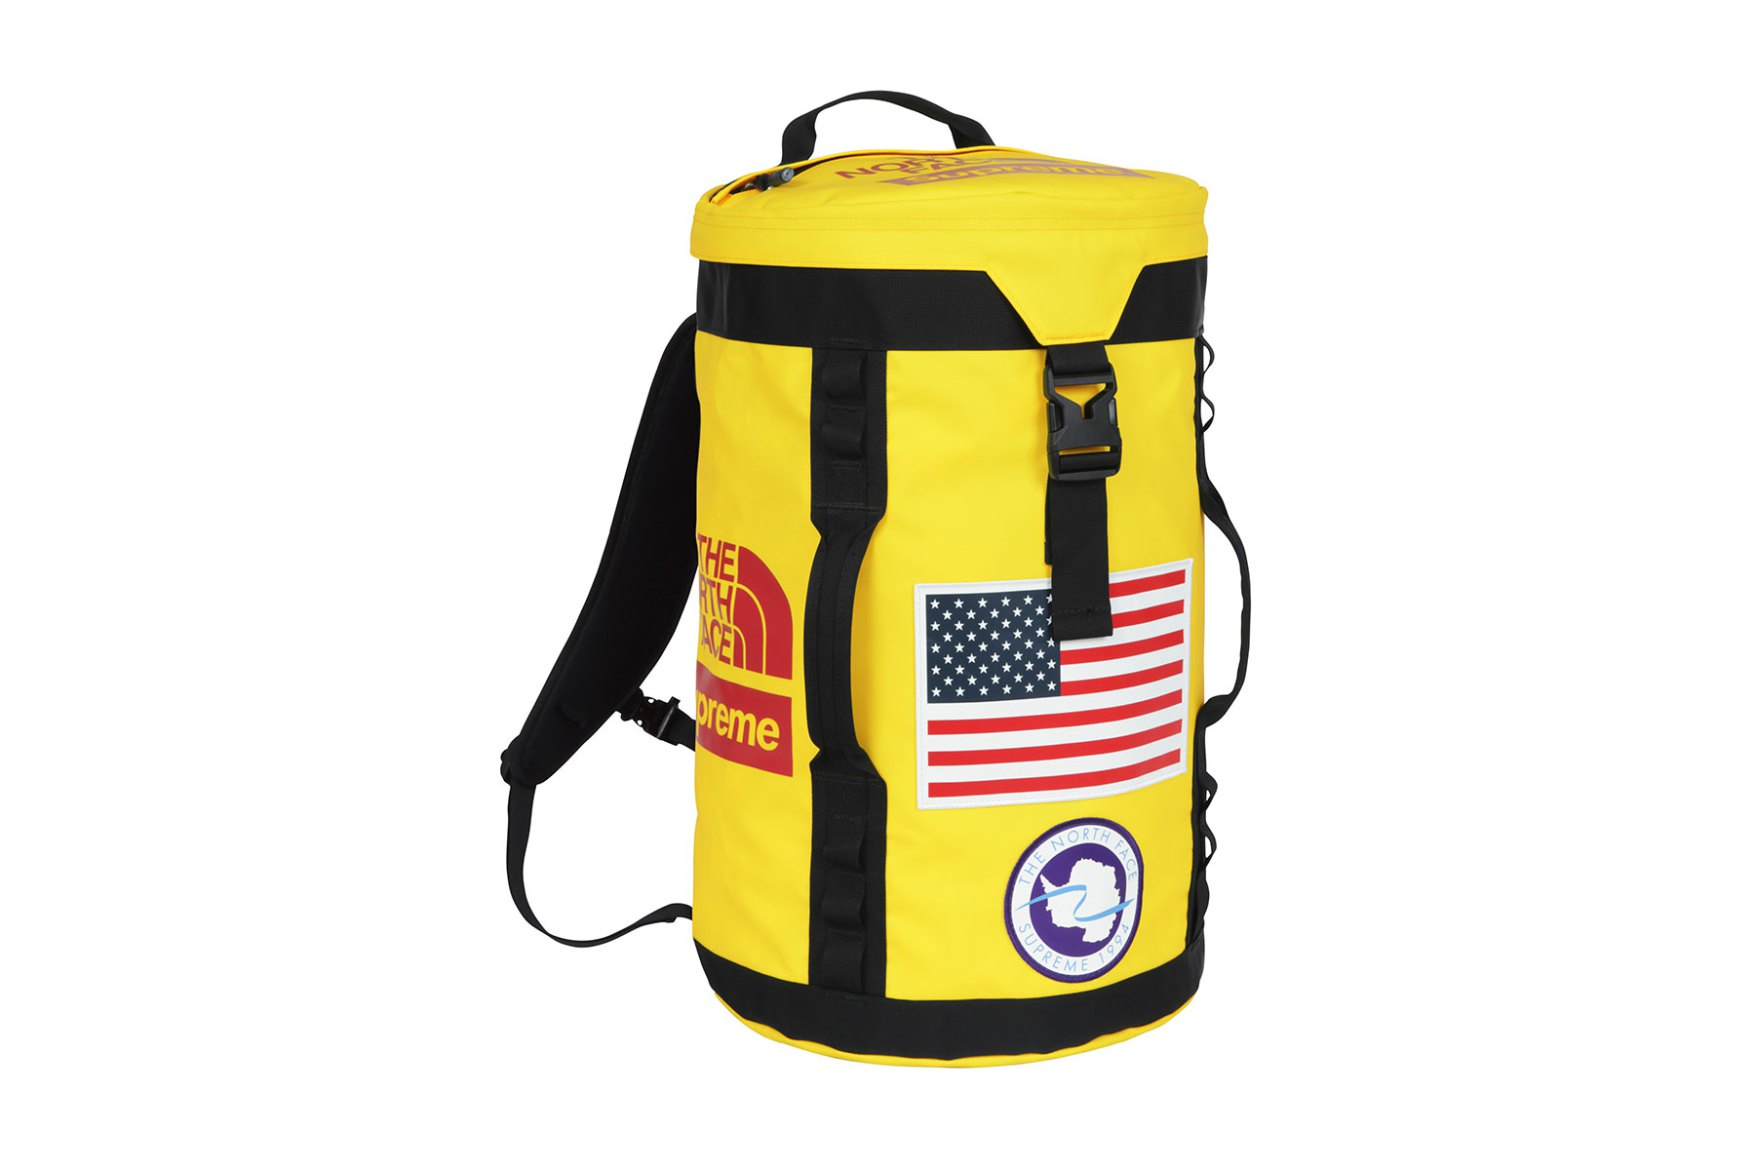 supreme-the-north-face-2017-spring-summer-yellow-big-haul-backpack-30